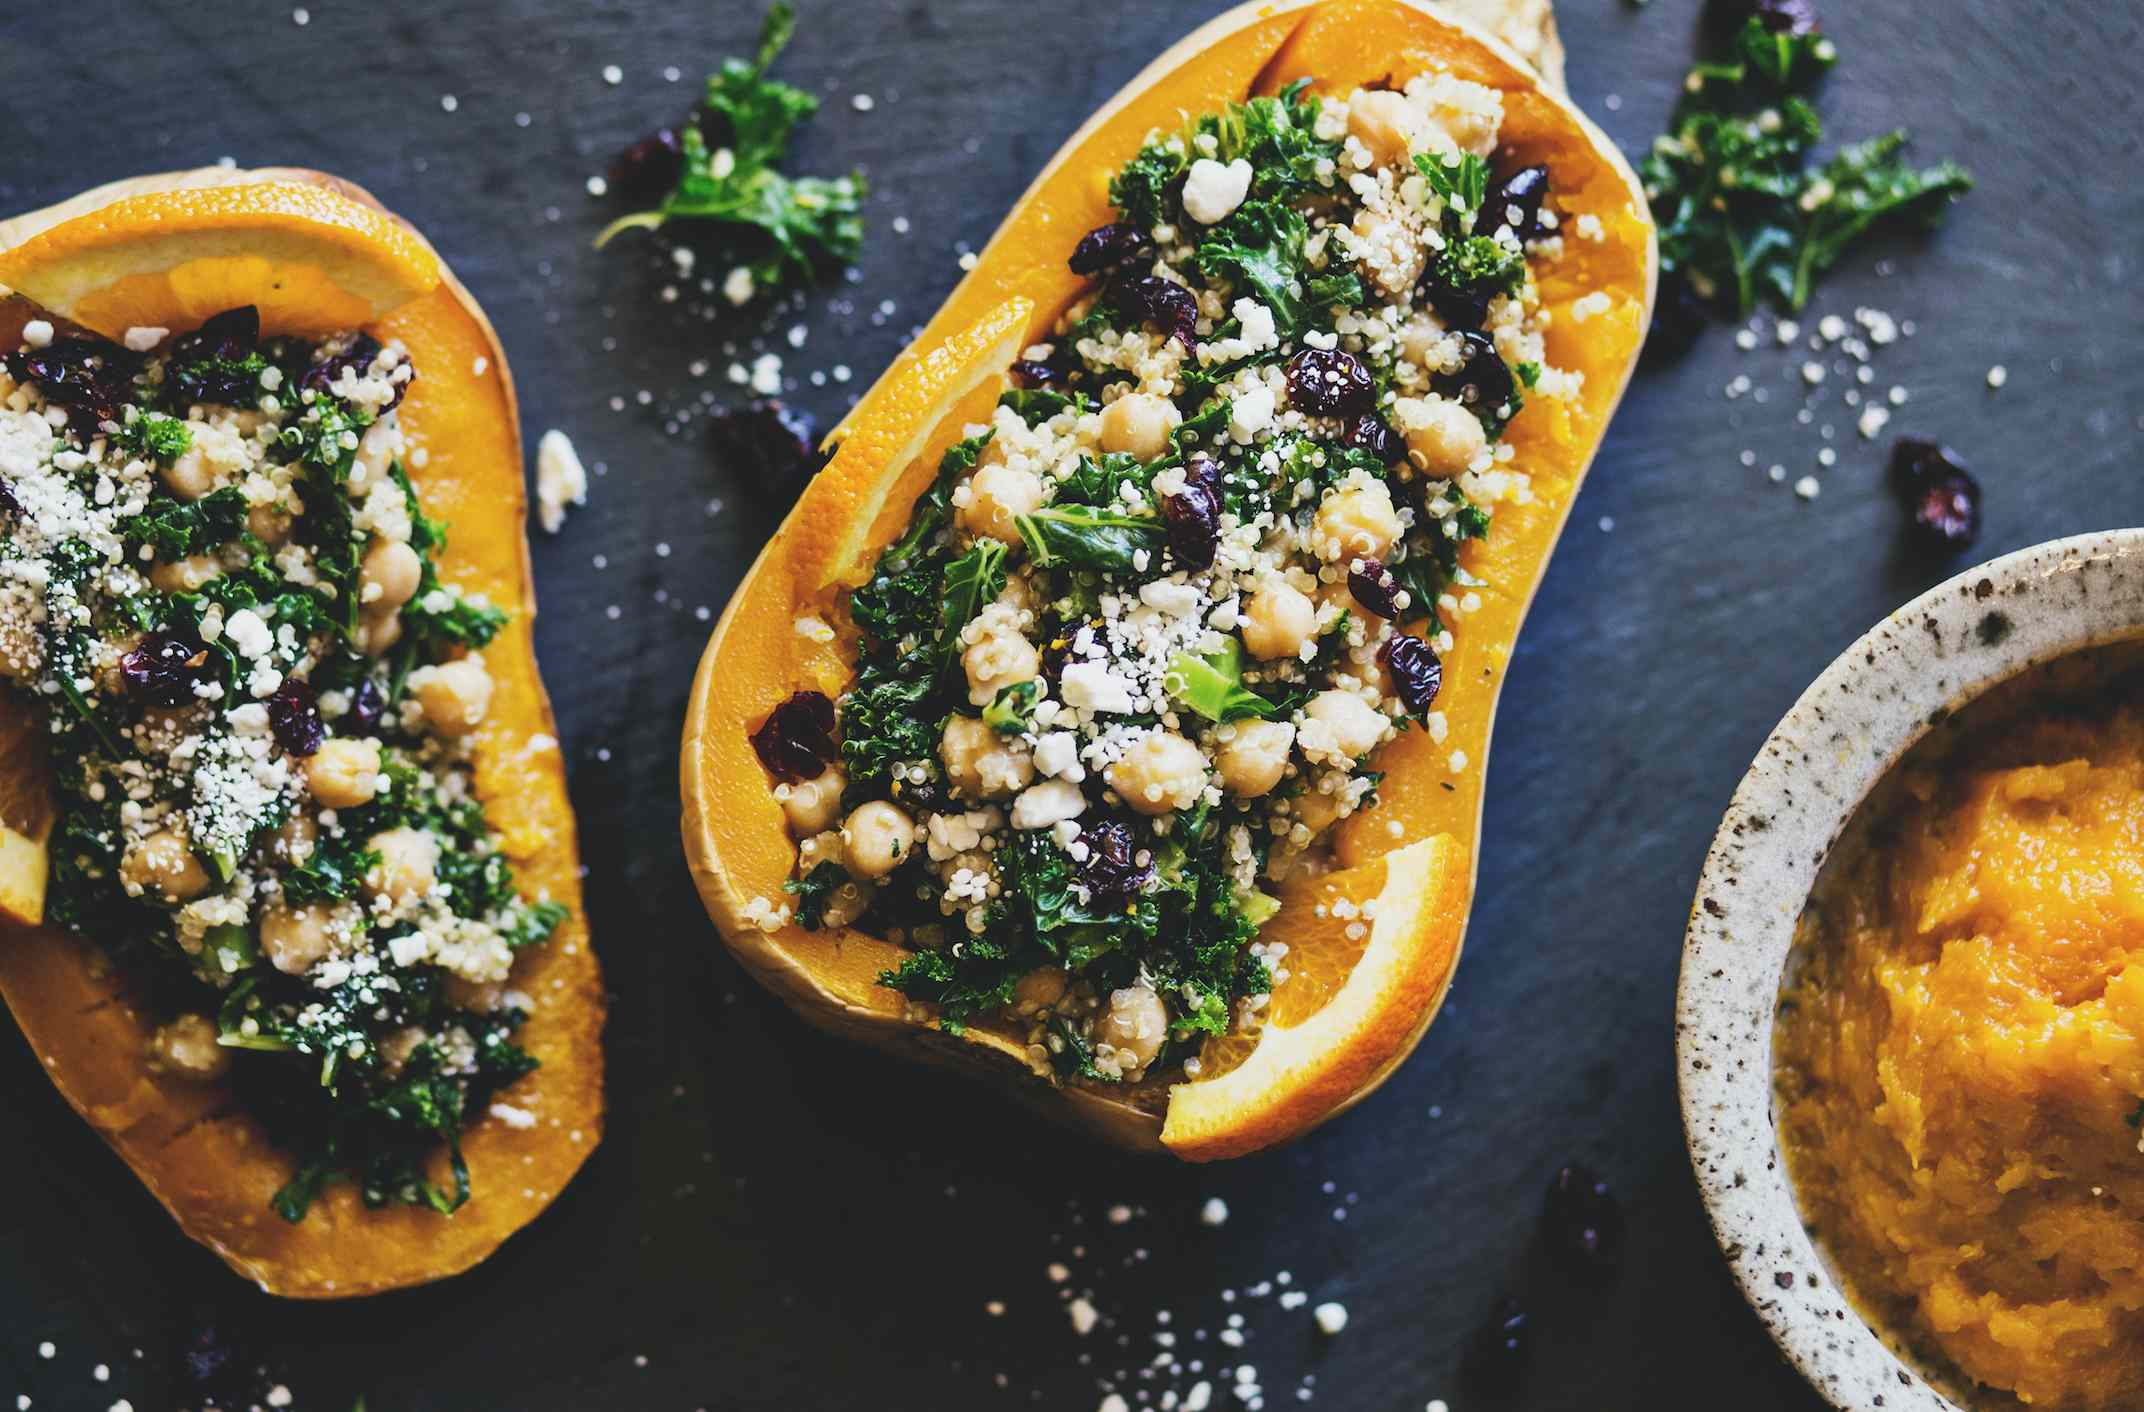 Butternut squash stuffed with kale